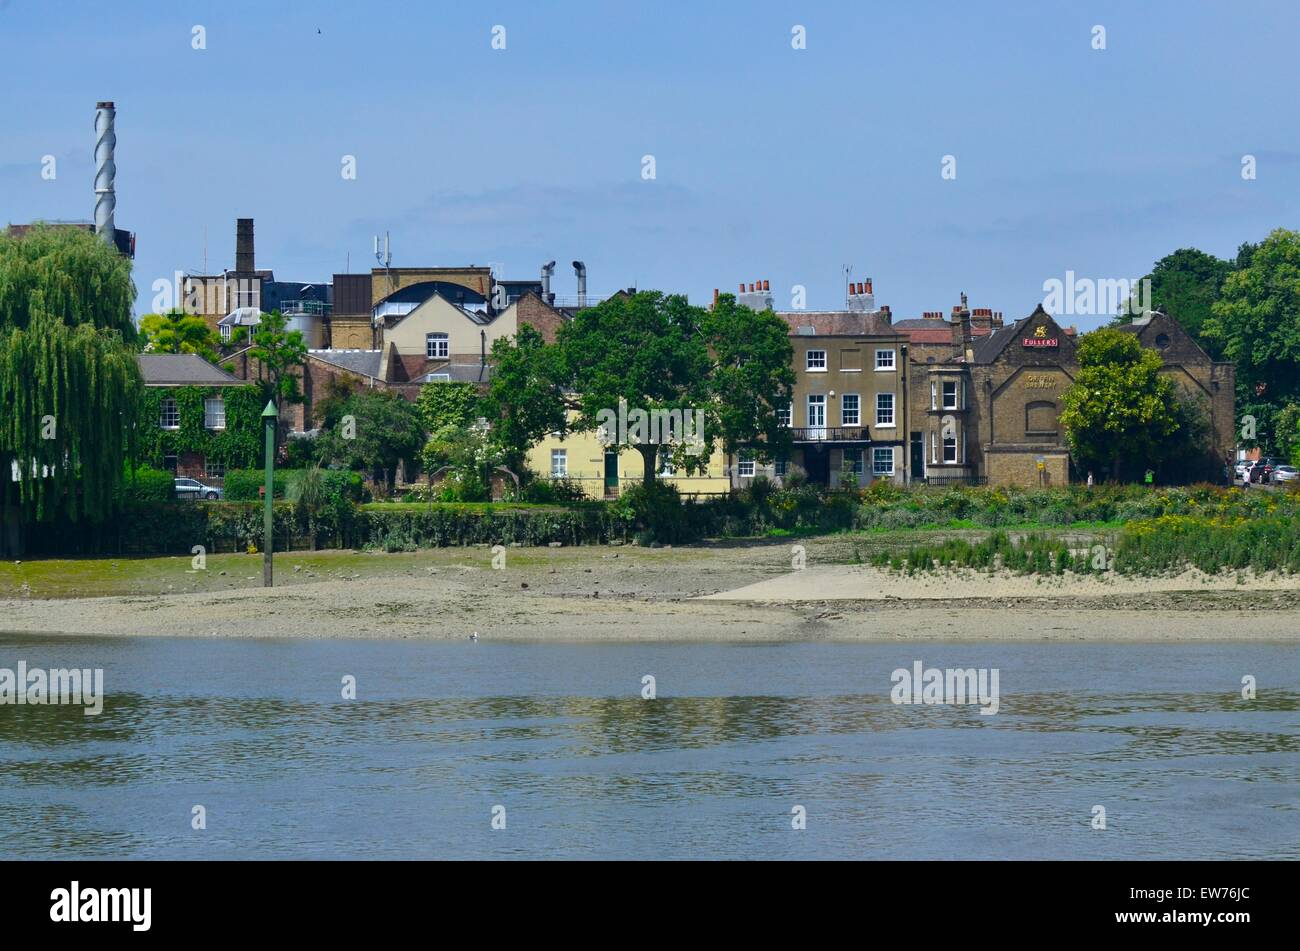 Fullers Brewery, Chiswick, London, England, UK - Stock Image